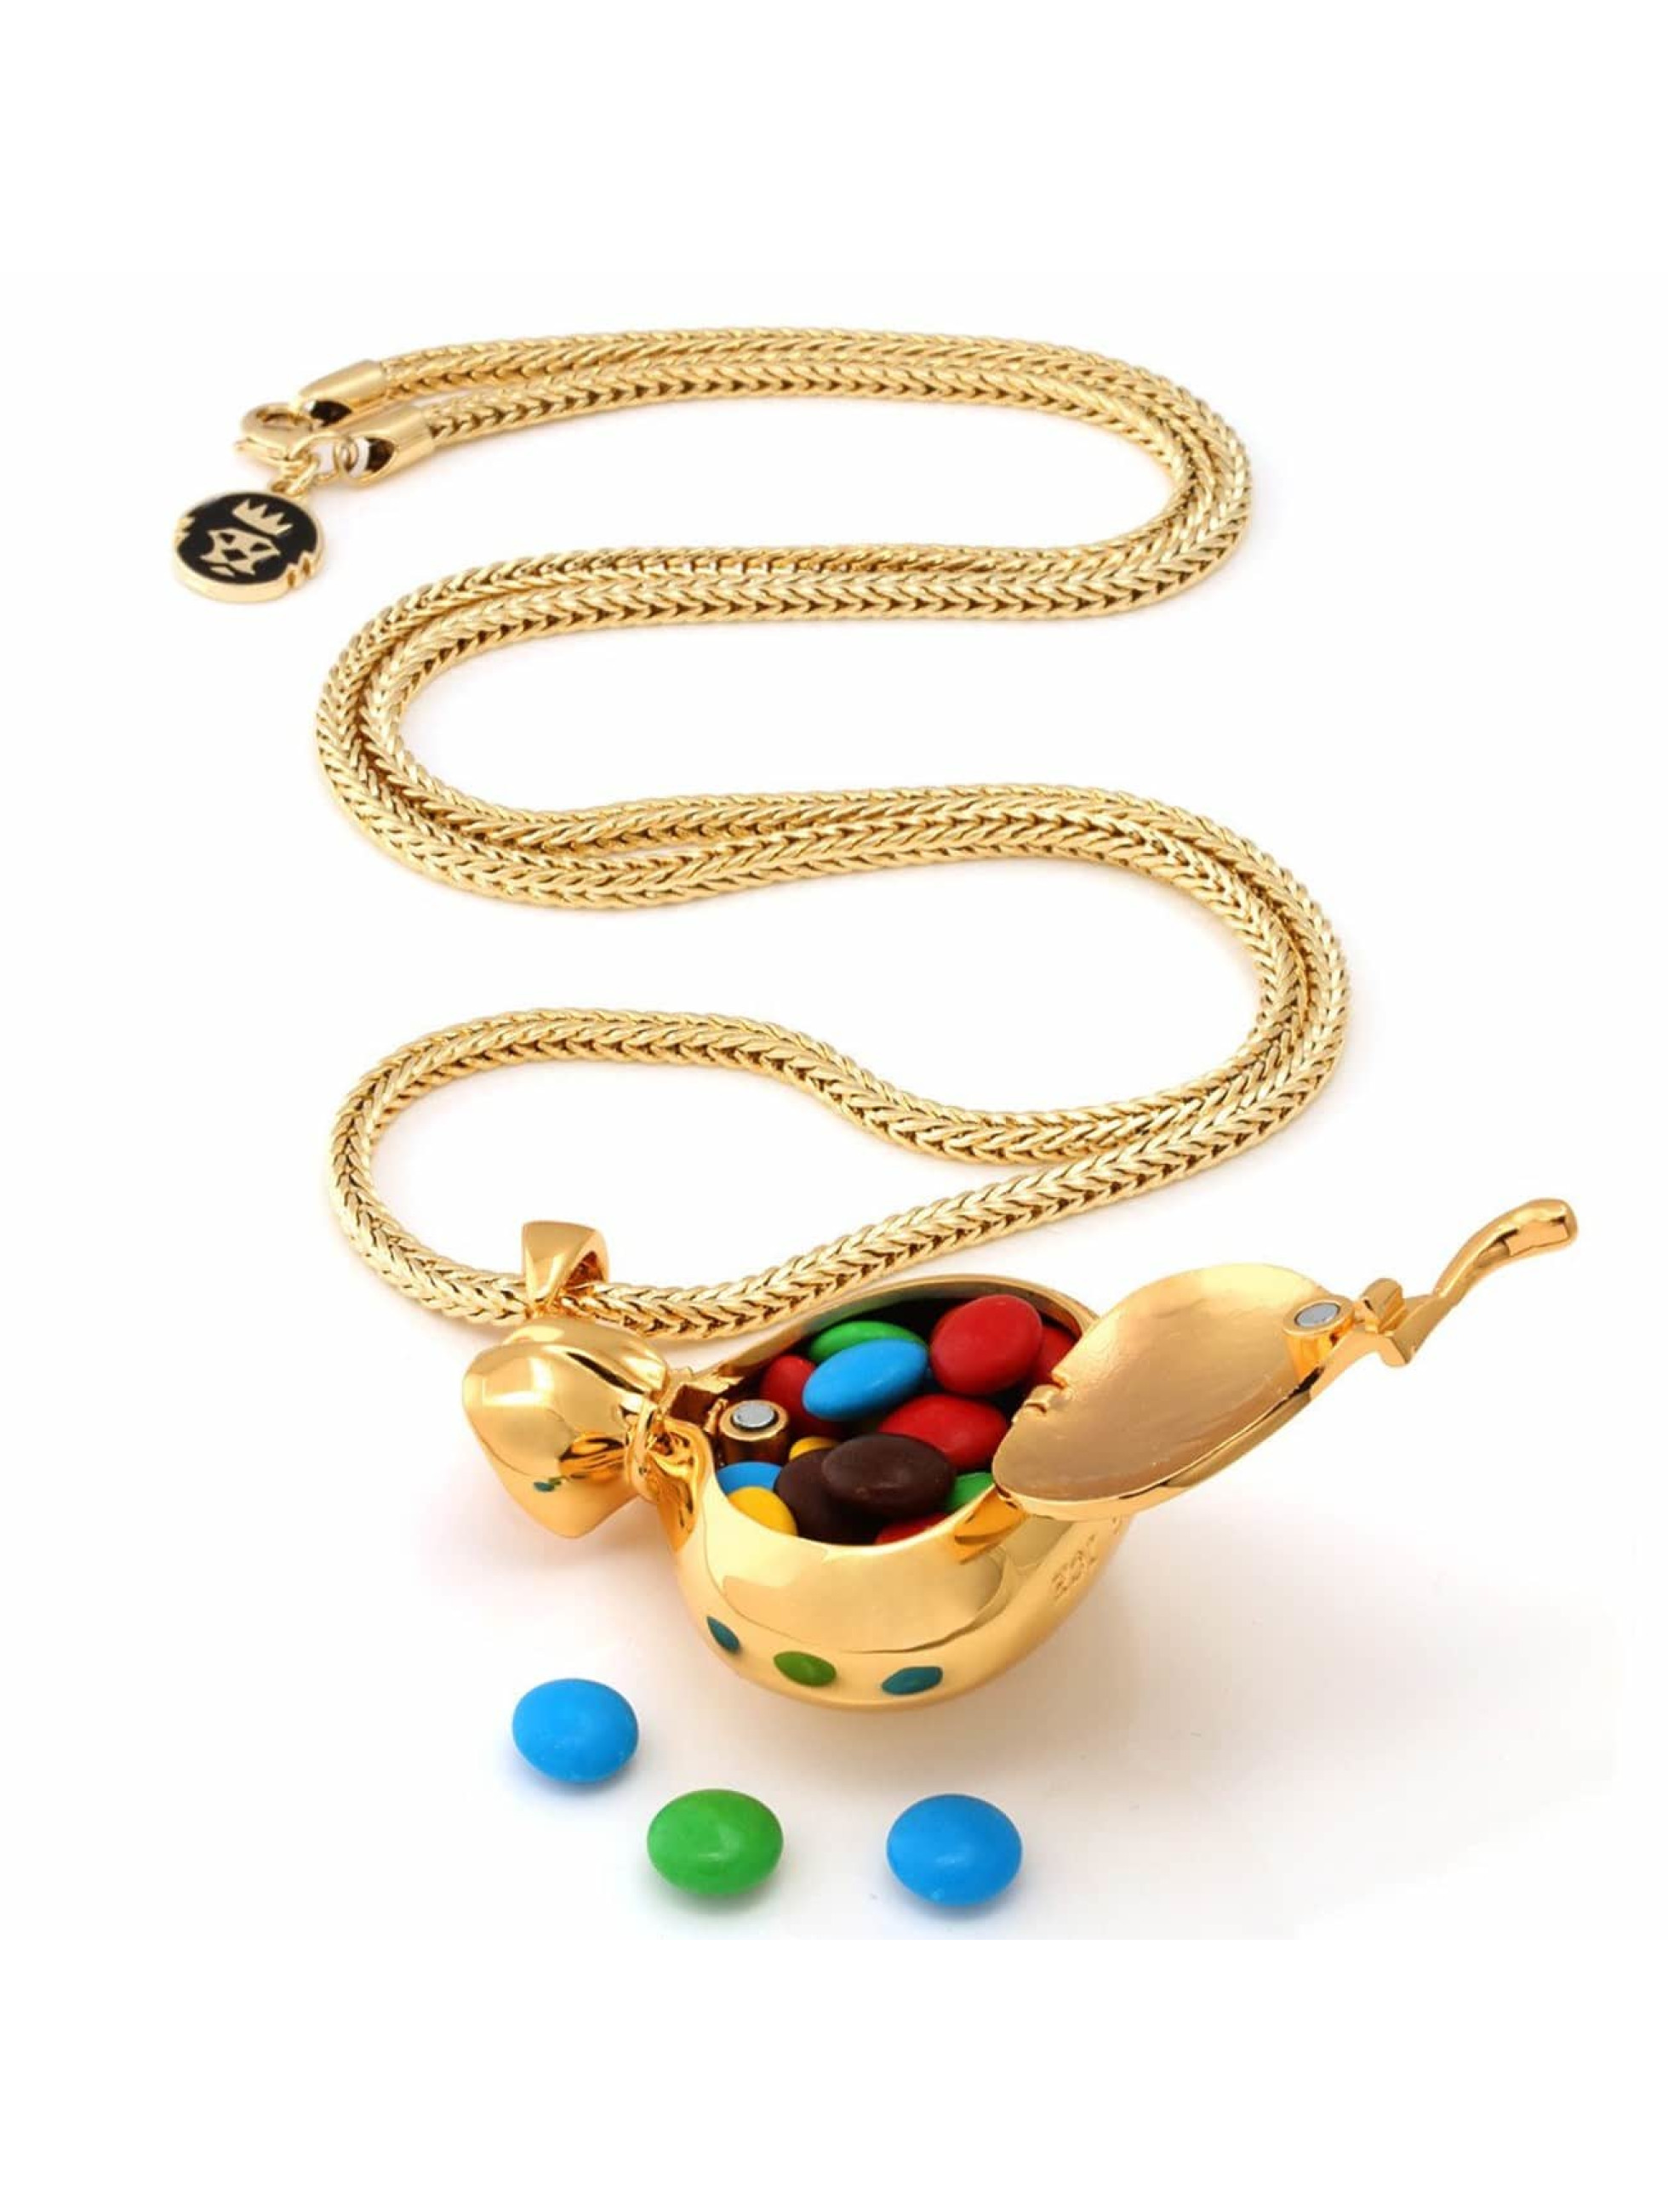 KING ICE Necklace Money Bag gold colored